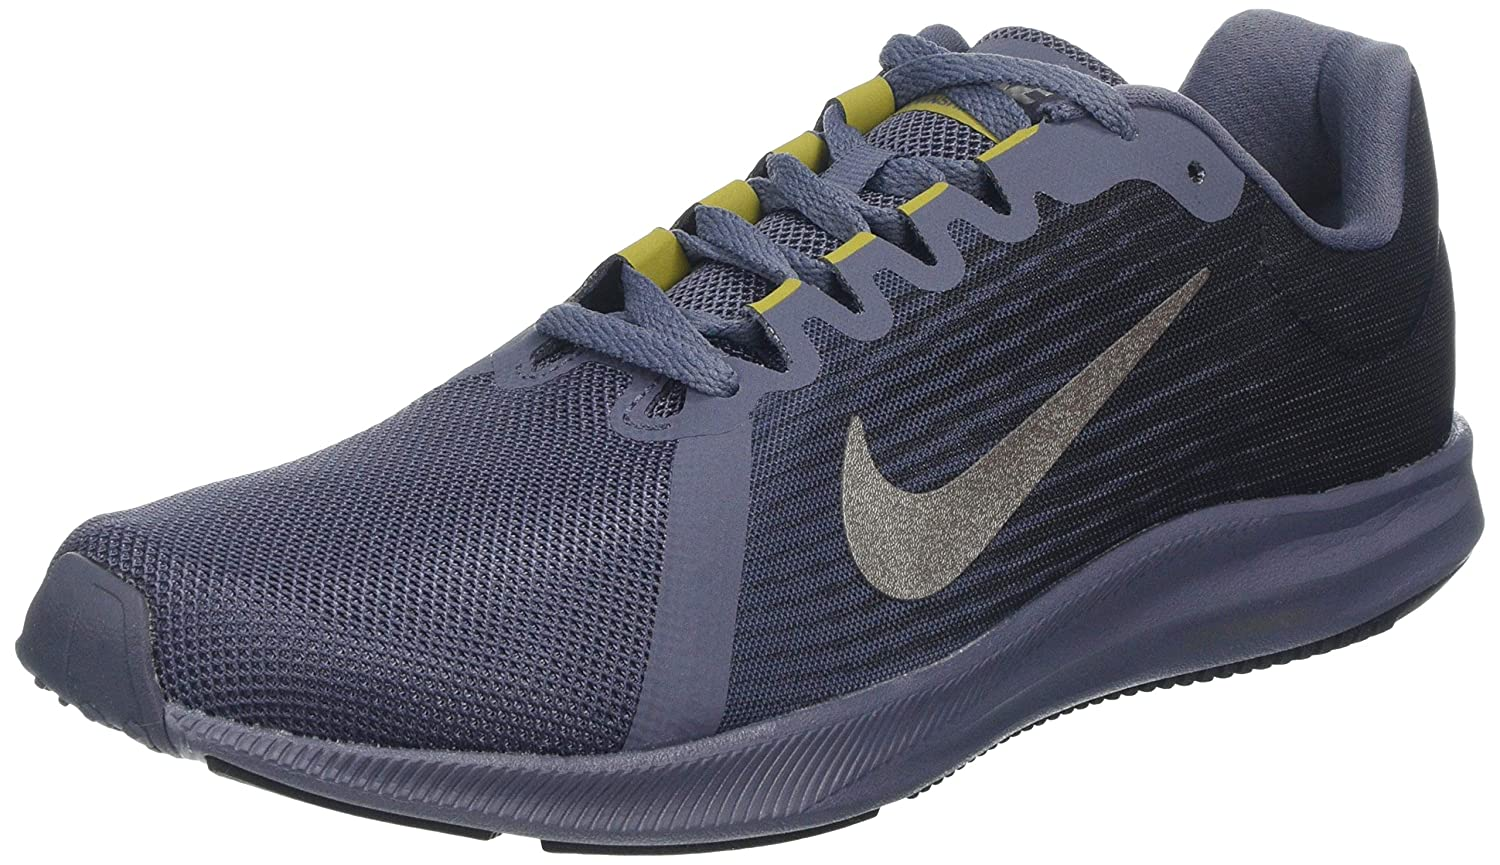 gris (Light Carbon Metallic Pewter-peat Moss-noir 011) Nike Downshifter 8, Chaussures de Running Homme 42 EU